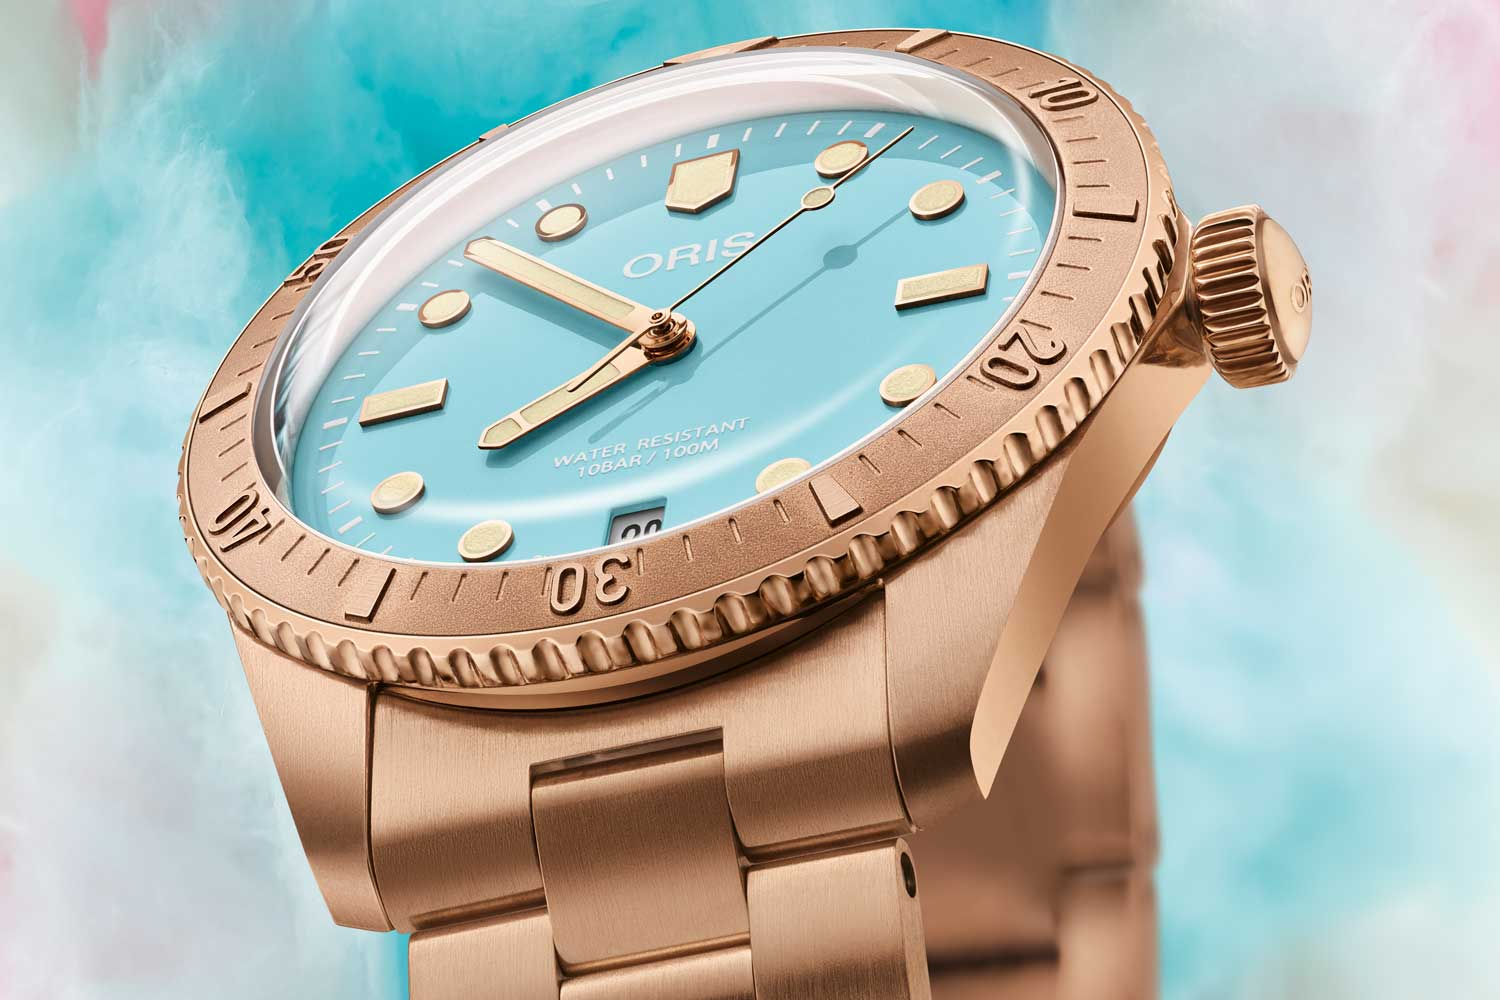 The watch is available in three delightful colours - sky blue, wild green and lipstick pink.